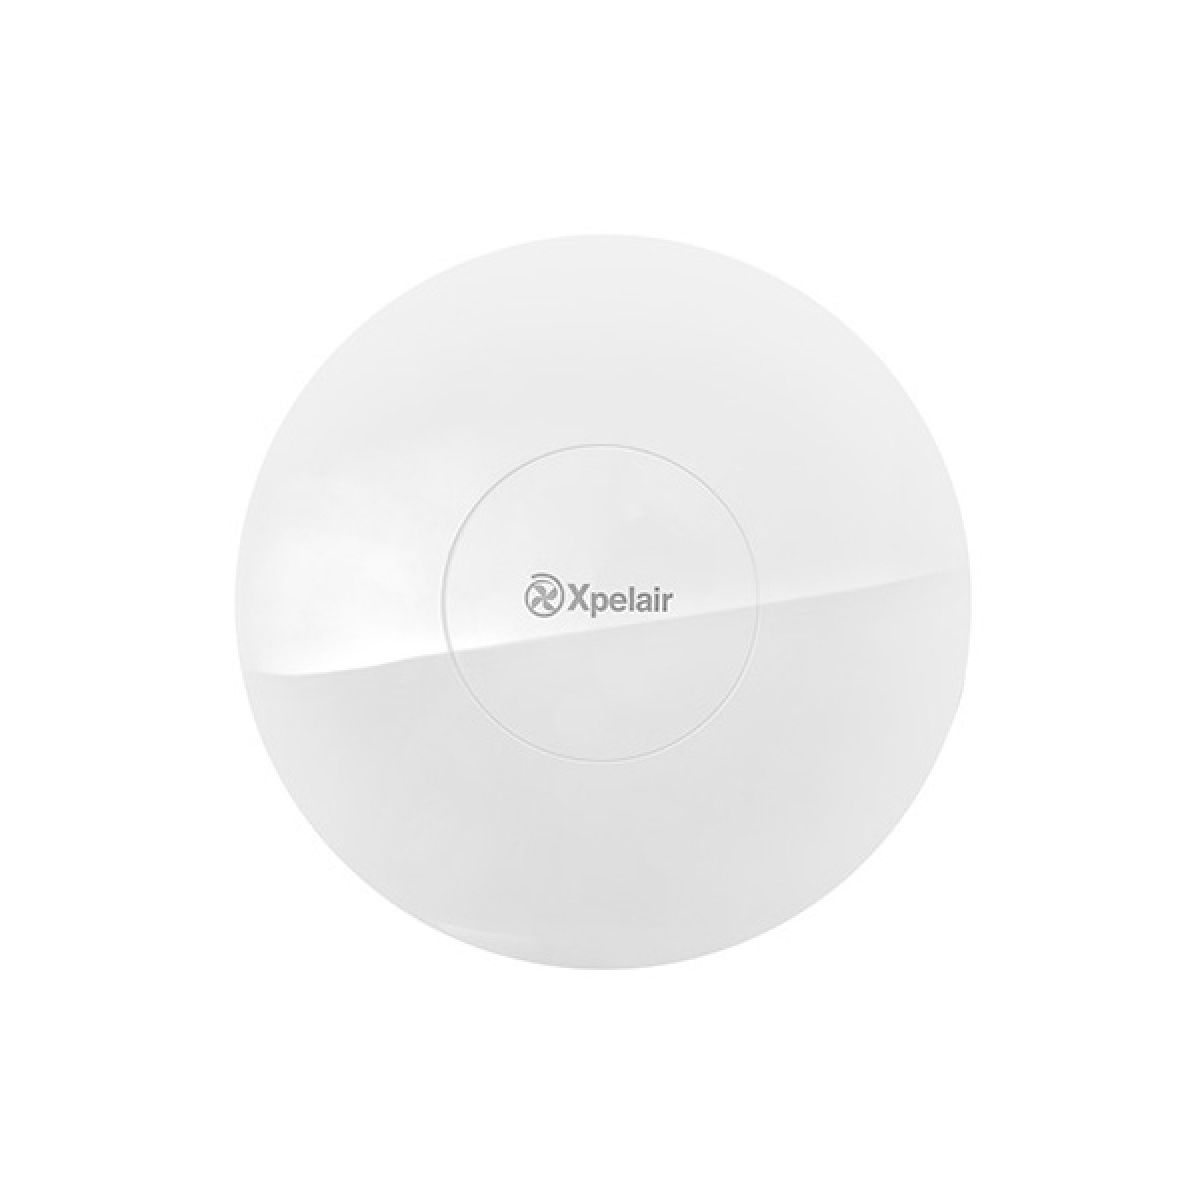 Xpelair Simply Silent Contour Round Bathroom Fan with Timer 100mm - Front